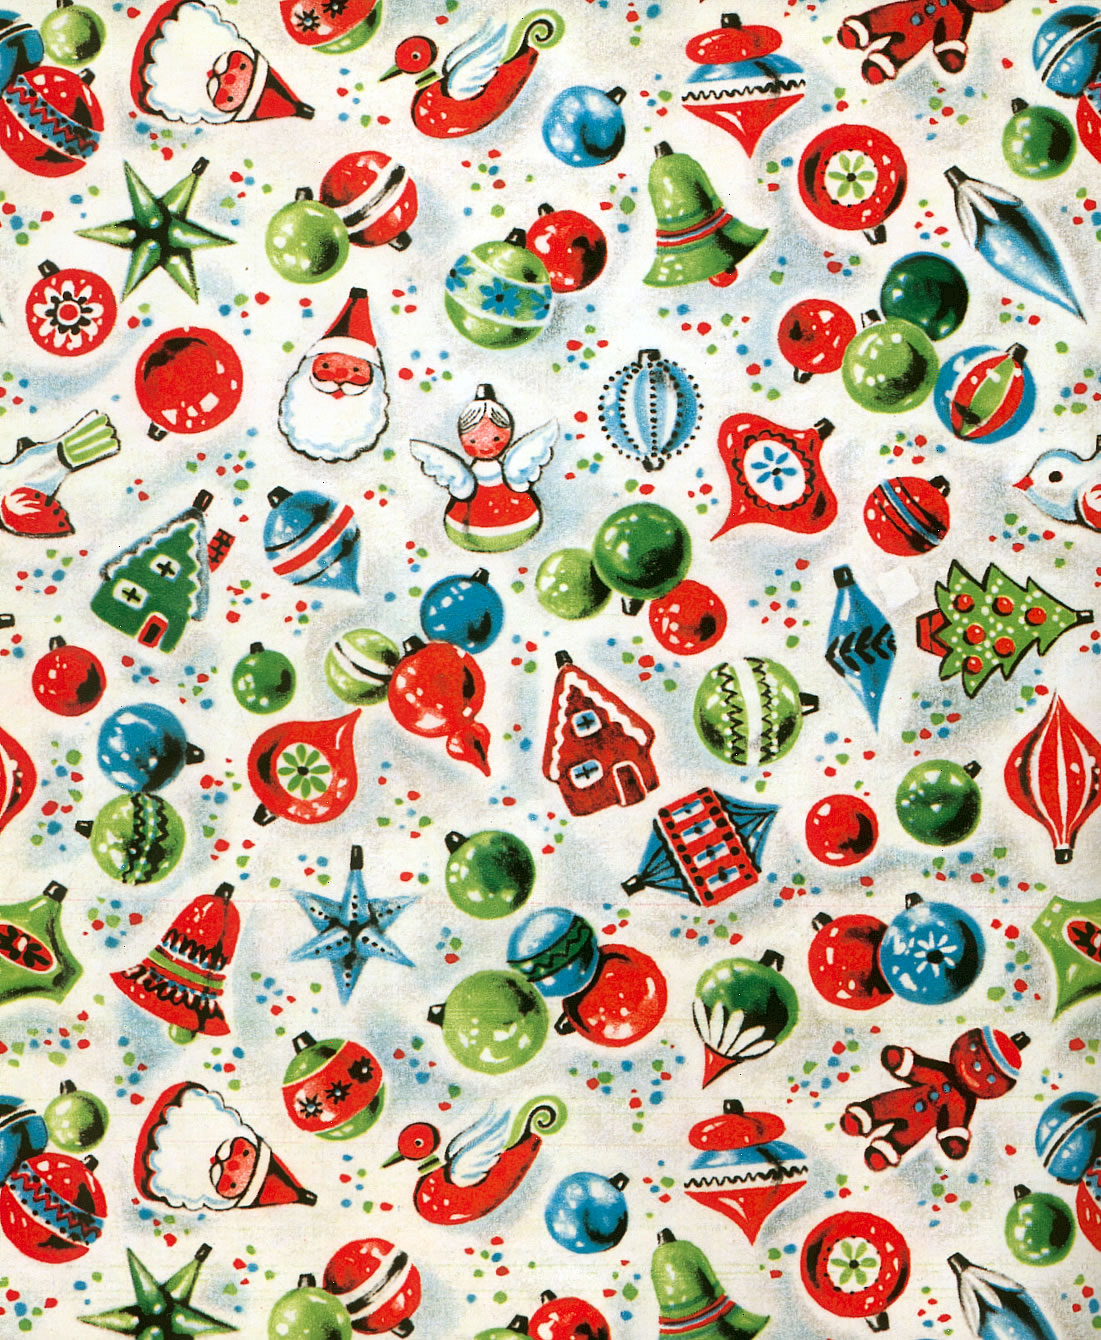 Christmas-wrapping-paper-wallpaper-wp5603896